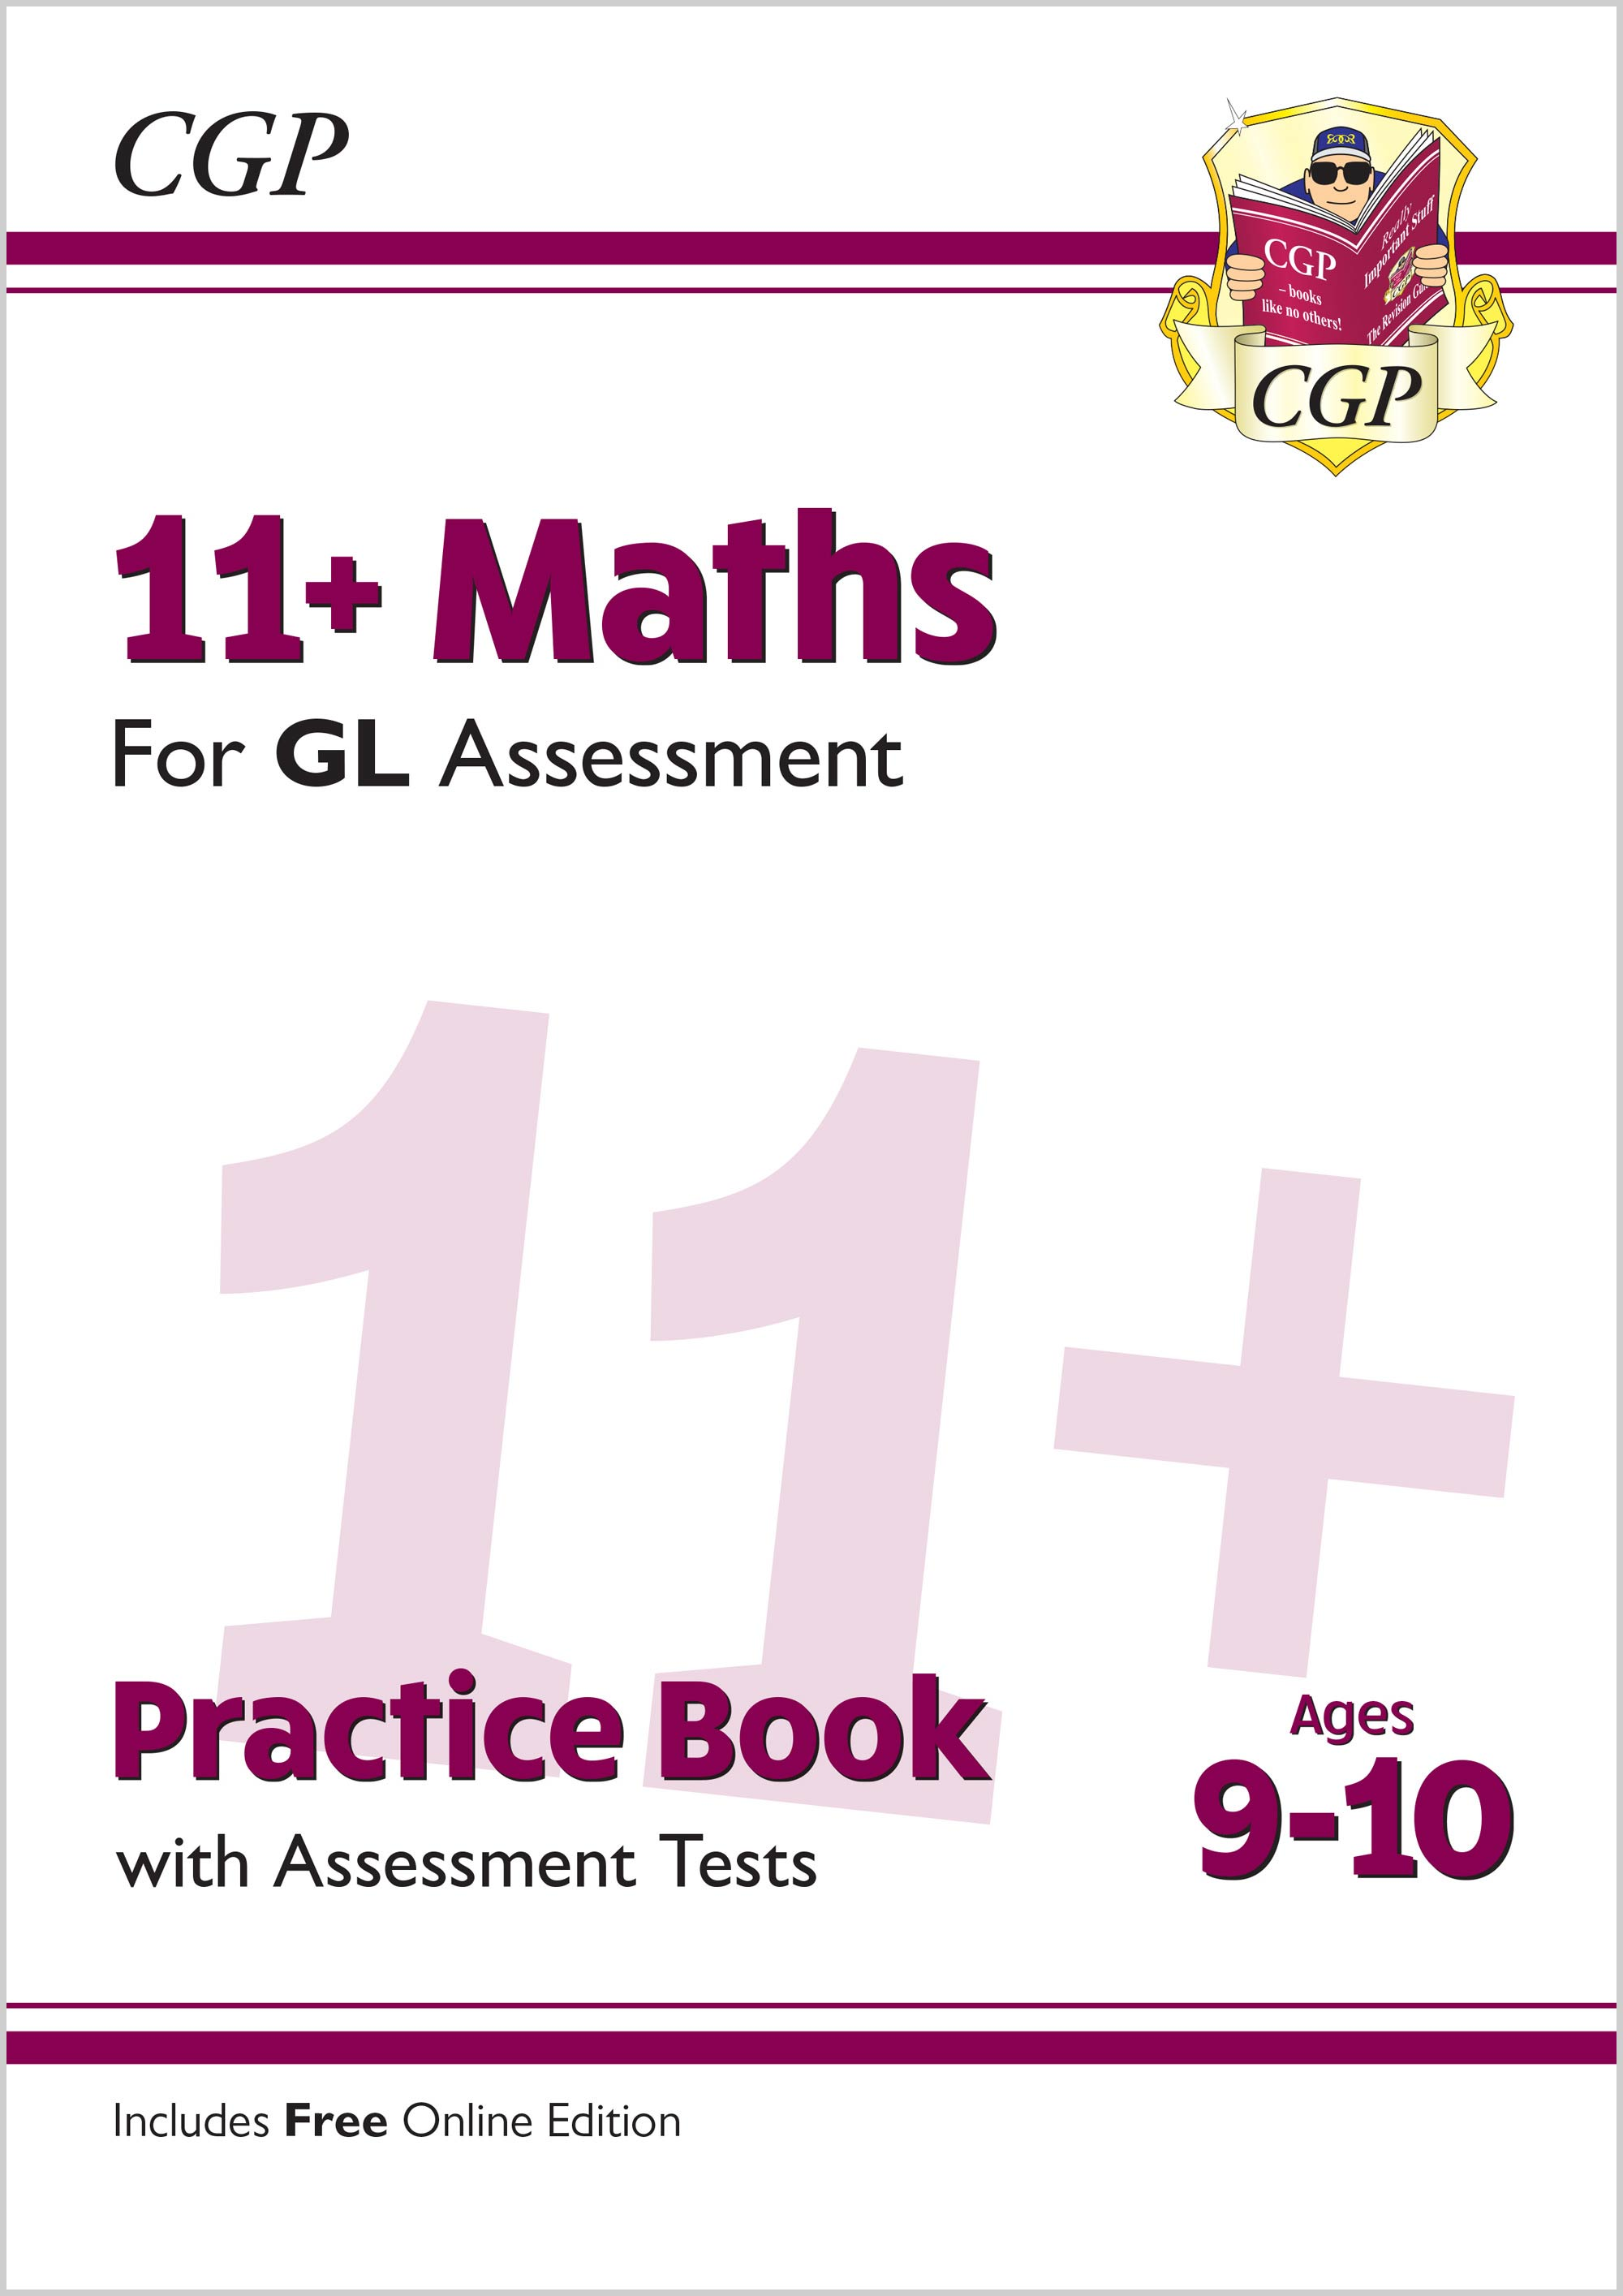 M5QE2 - New 11+ GL Maths Practice Book & Assessment Tests - Ages 9-10 (with Online Edition)